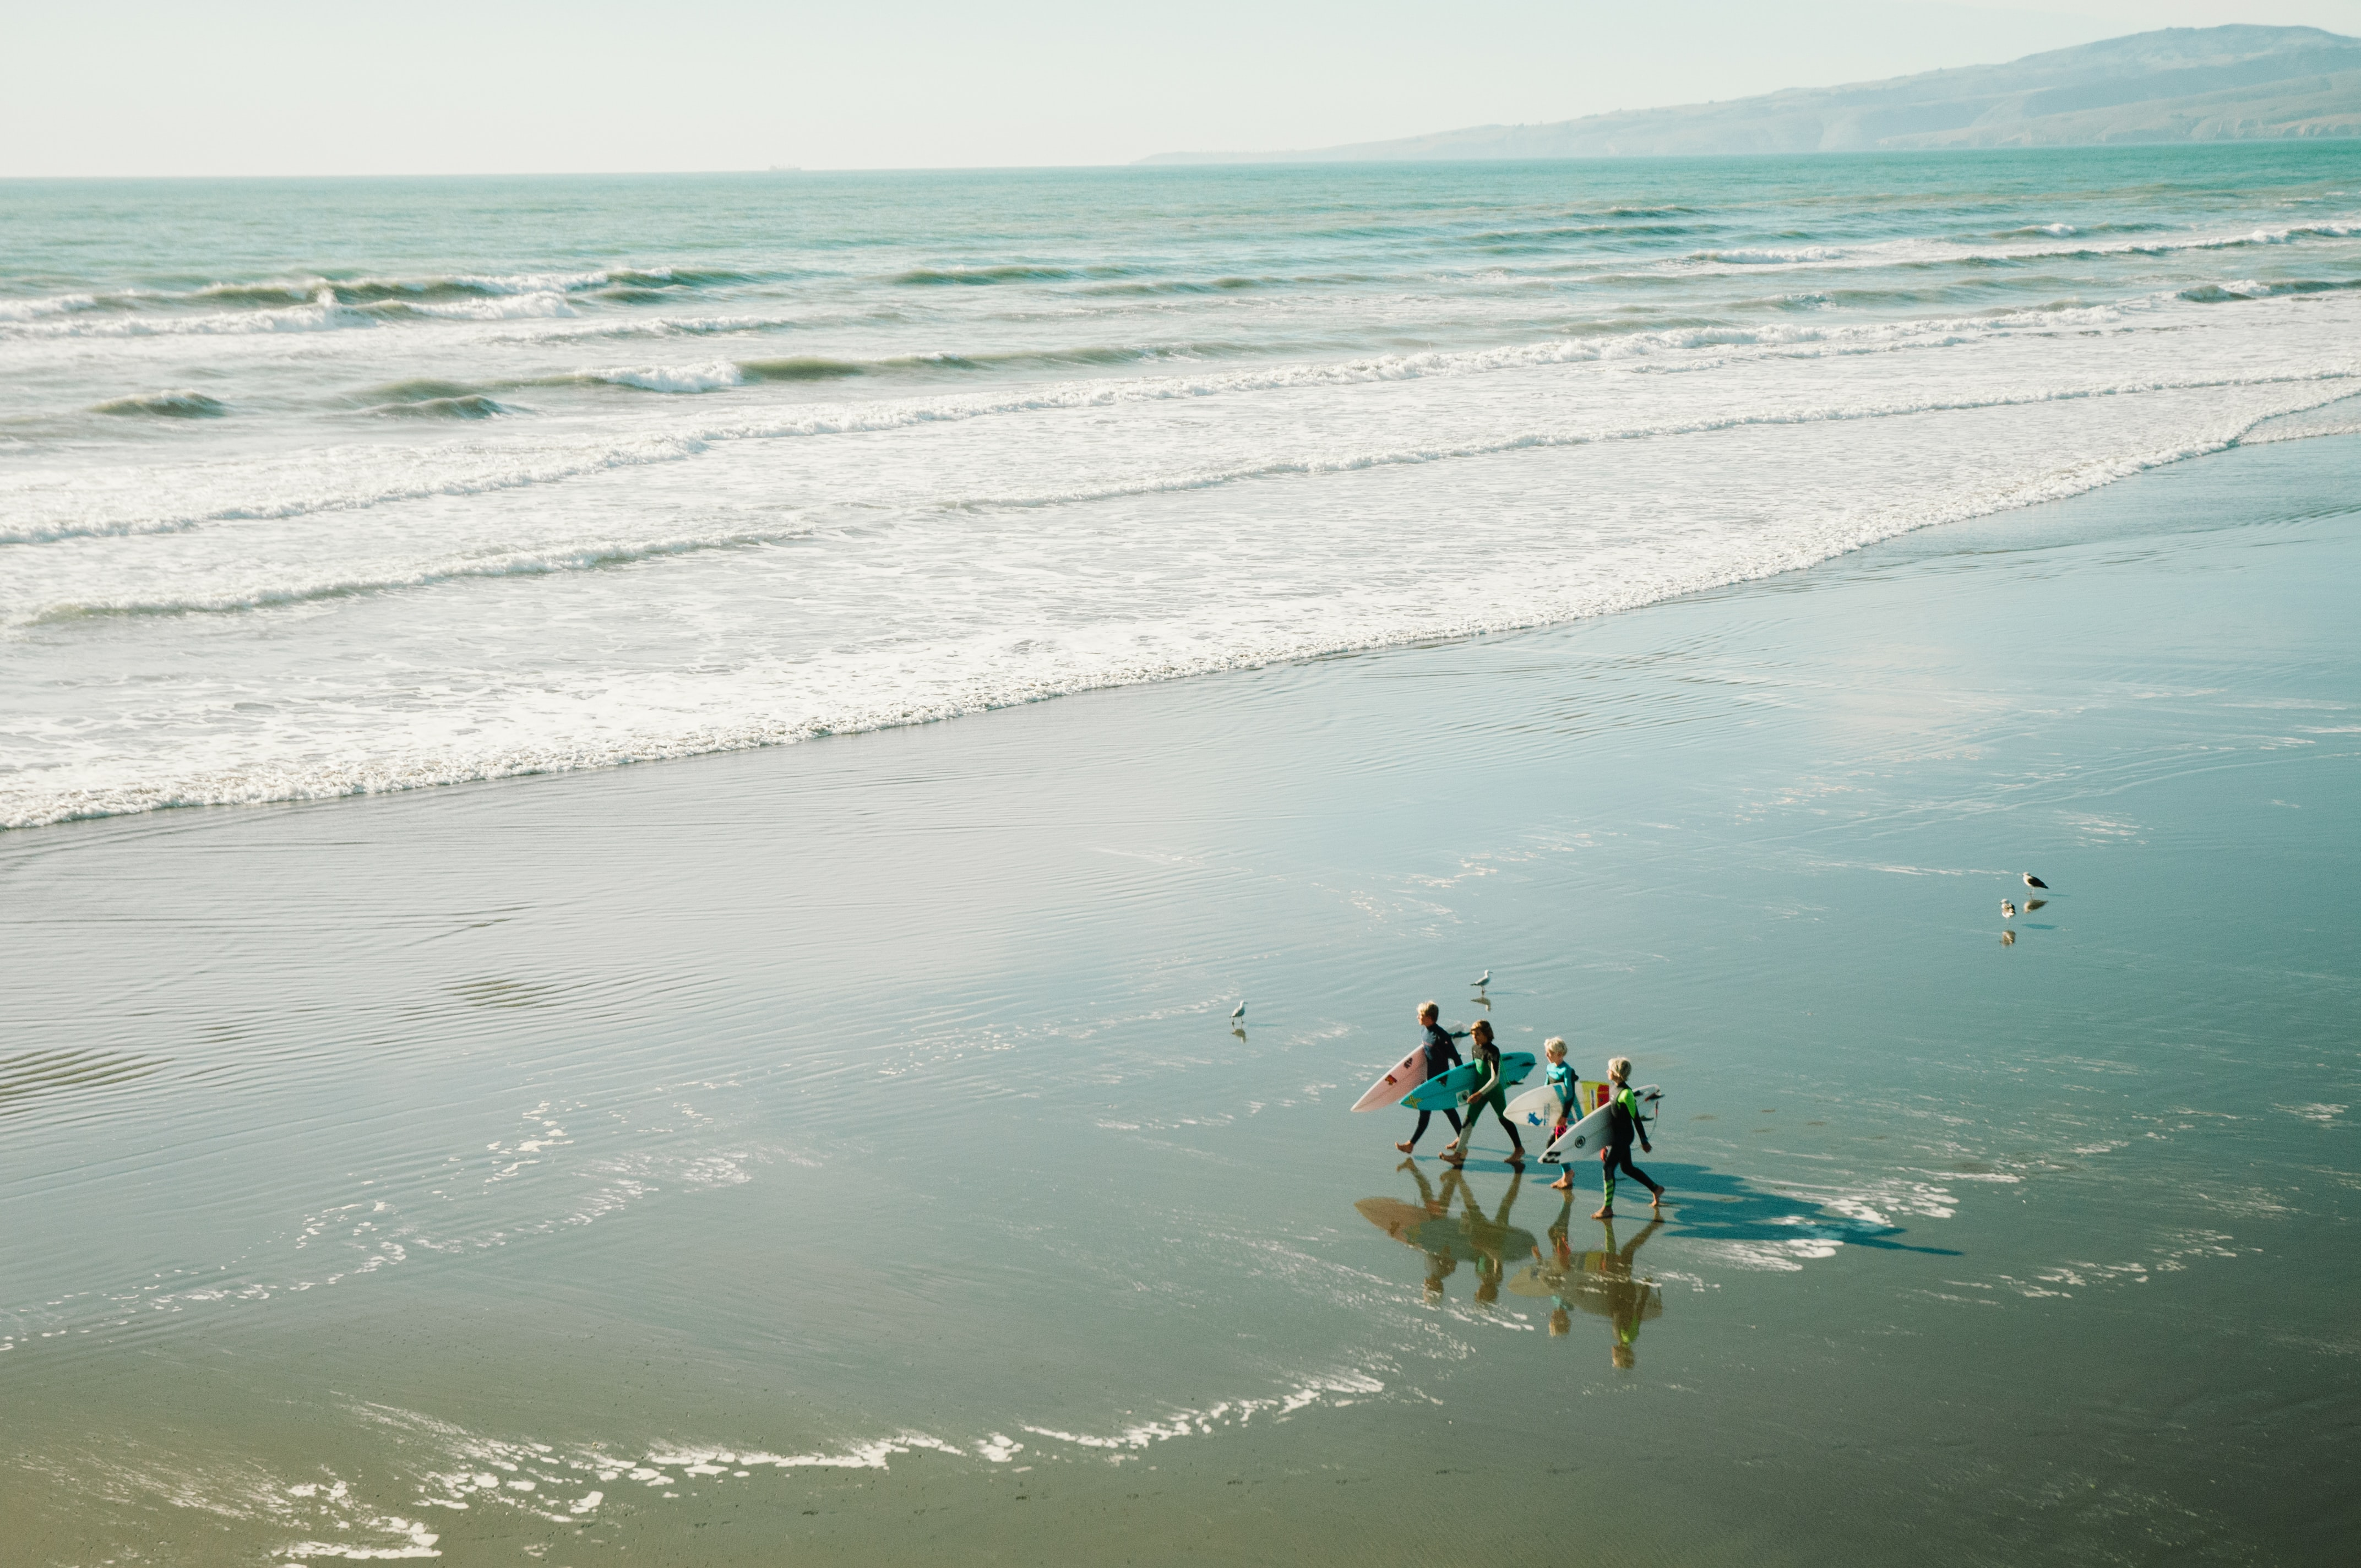 Four surfers walk along the beach with their brightly colored surfboards.